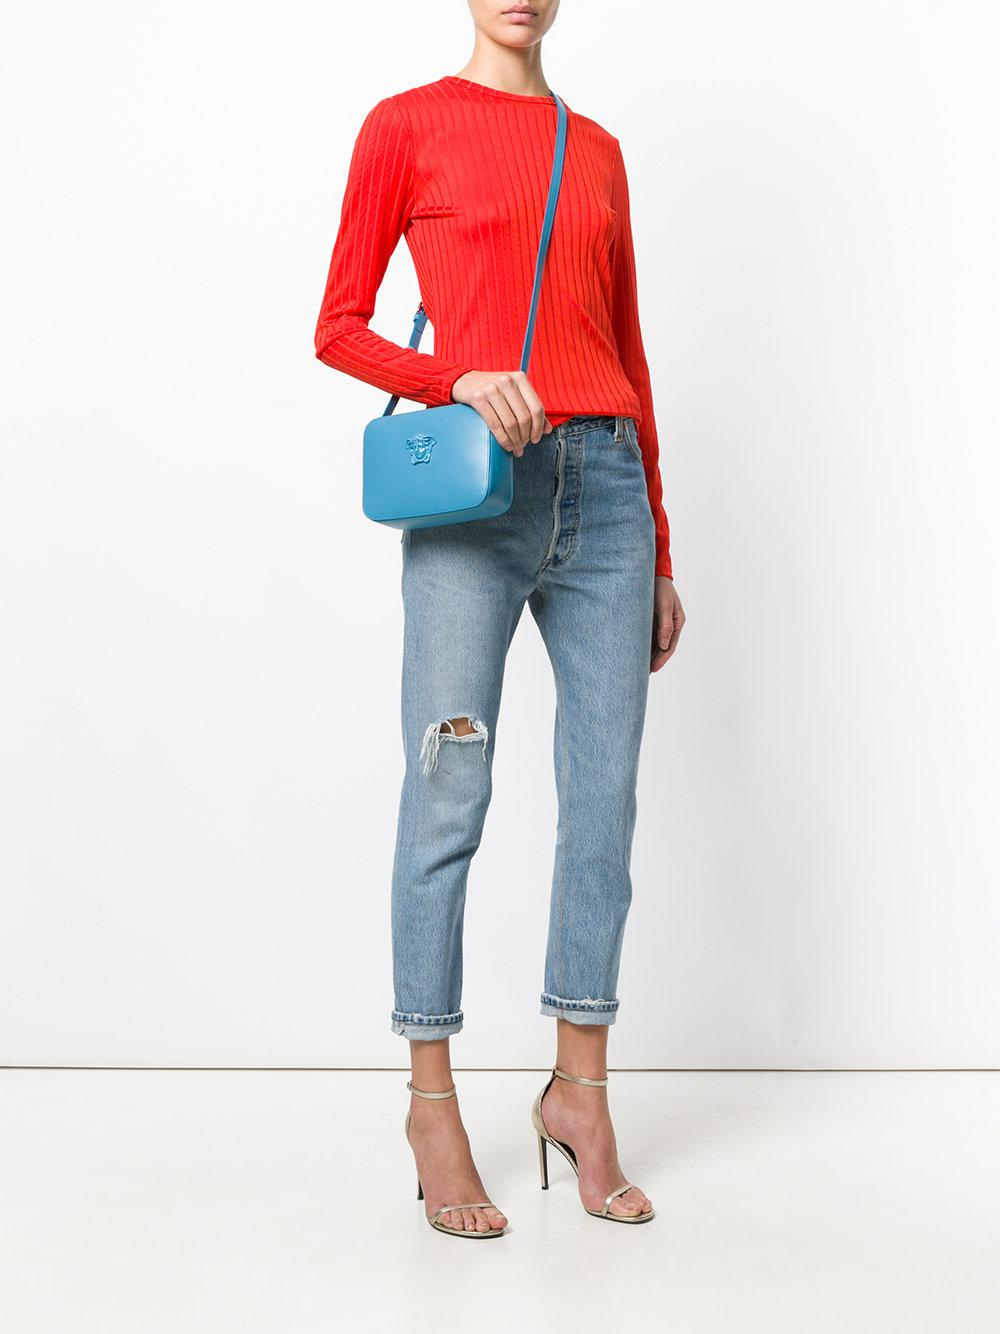 Versace Leather Medusa Palazzo Cross-body Bag in Blue